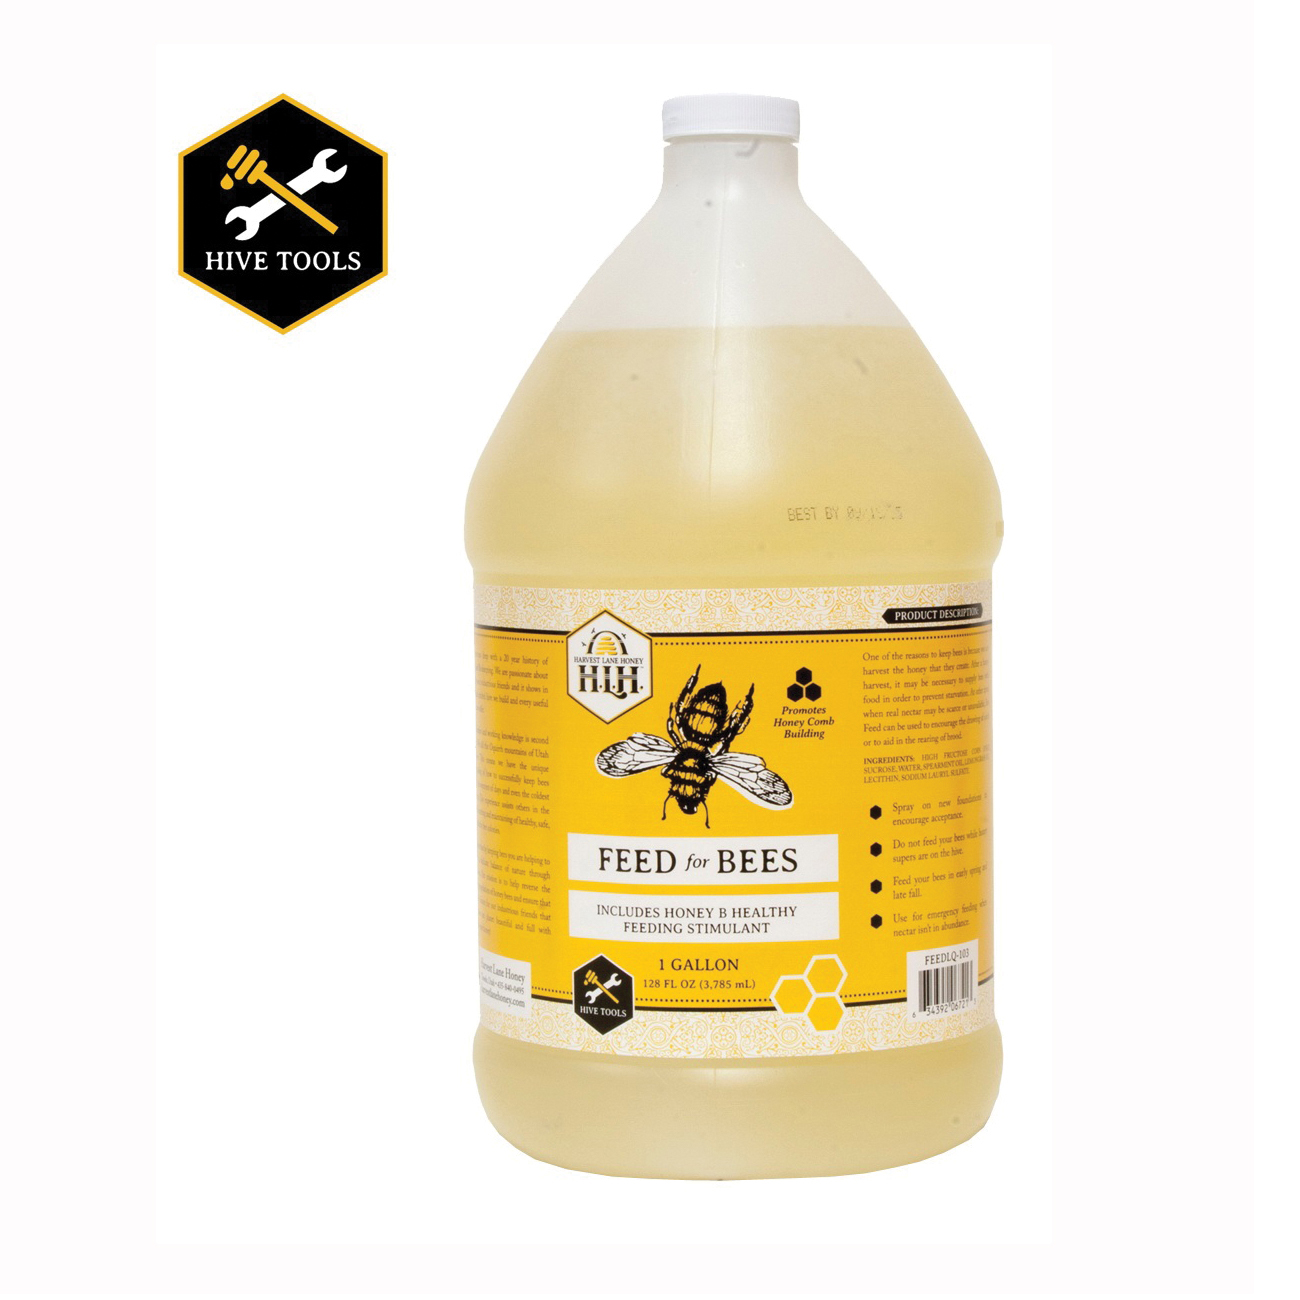 Picture of HARVEST LANE HONEY FEEDLQ-103 Liquid Bee Feed with Essential Oil, 1 gal Capacity